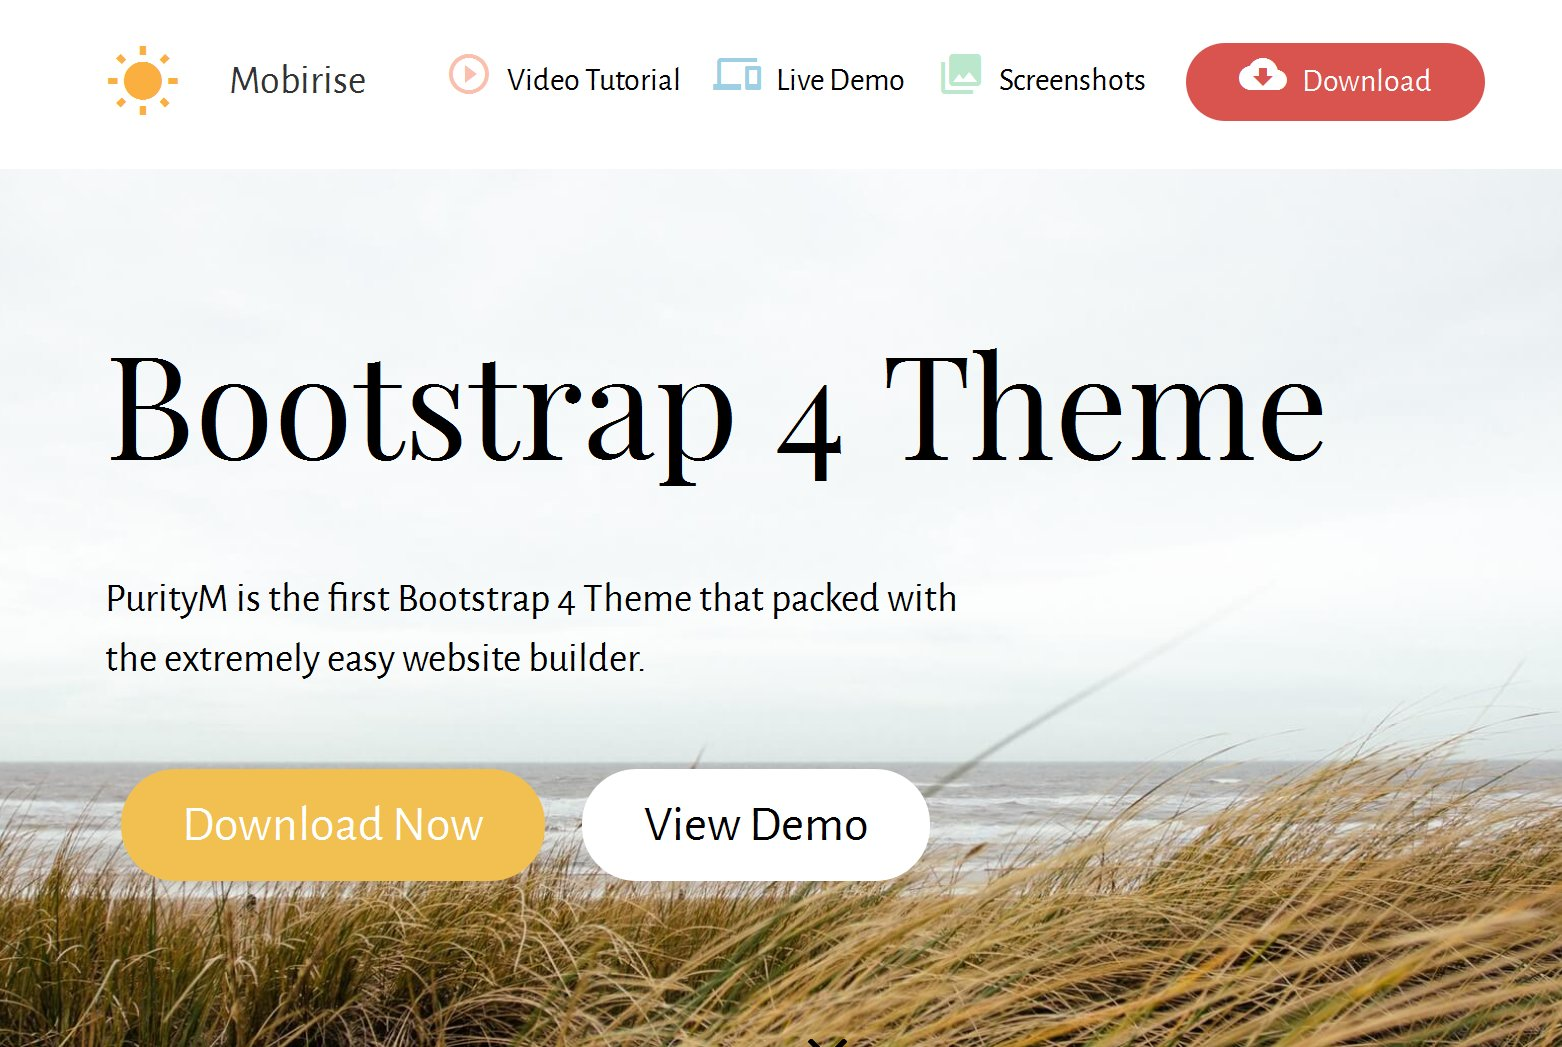 The new, fully responsive and retina-ready Bootstrap 4 theme comes with a big set of pre-made blocks: image slideshow, contact form,  social share buttons, mobile menu, google maps, vector icons, price table, footer, video and parallax background, article, blog, feedback, buttons, lightbox gallery, google fonts, full screen intro and more.